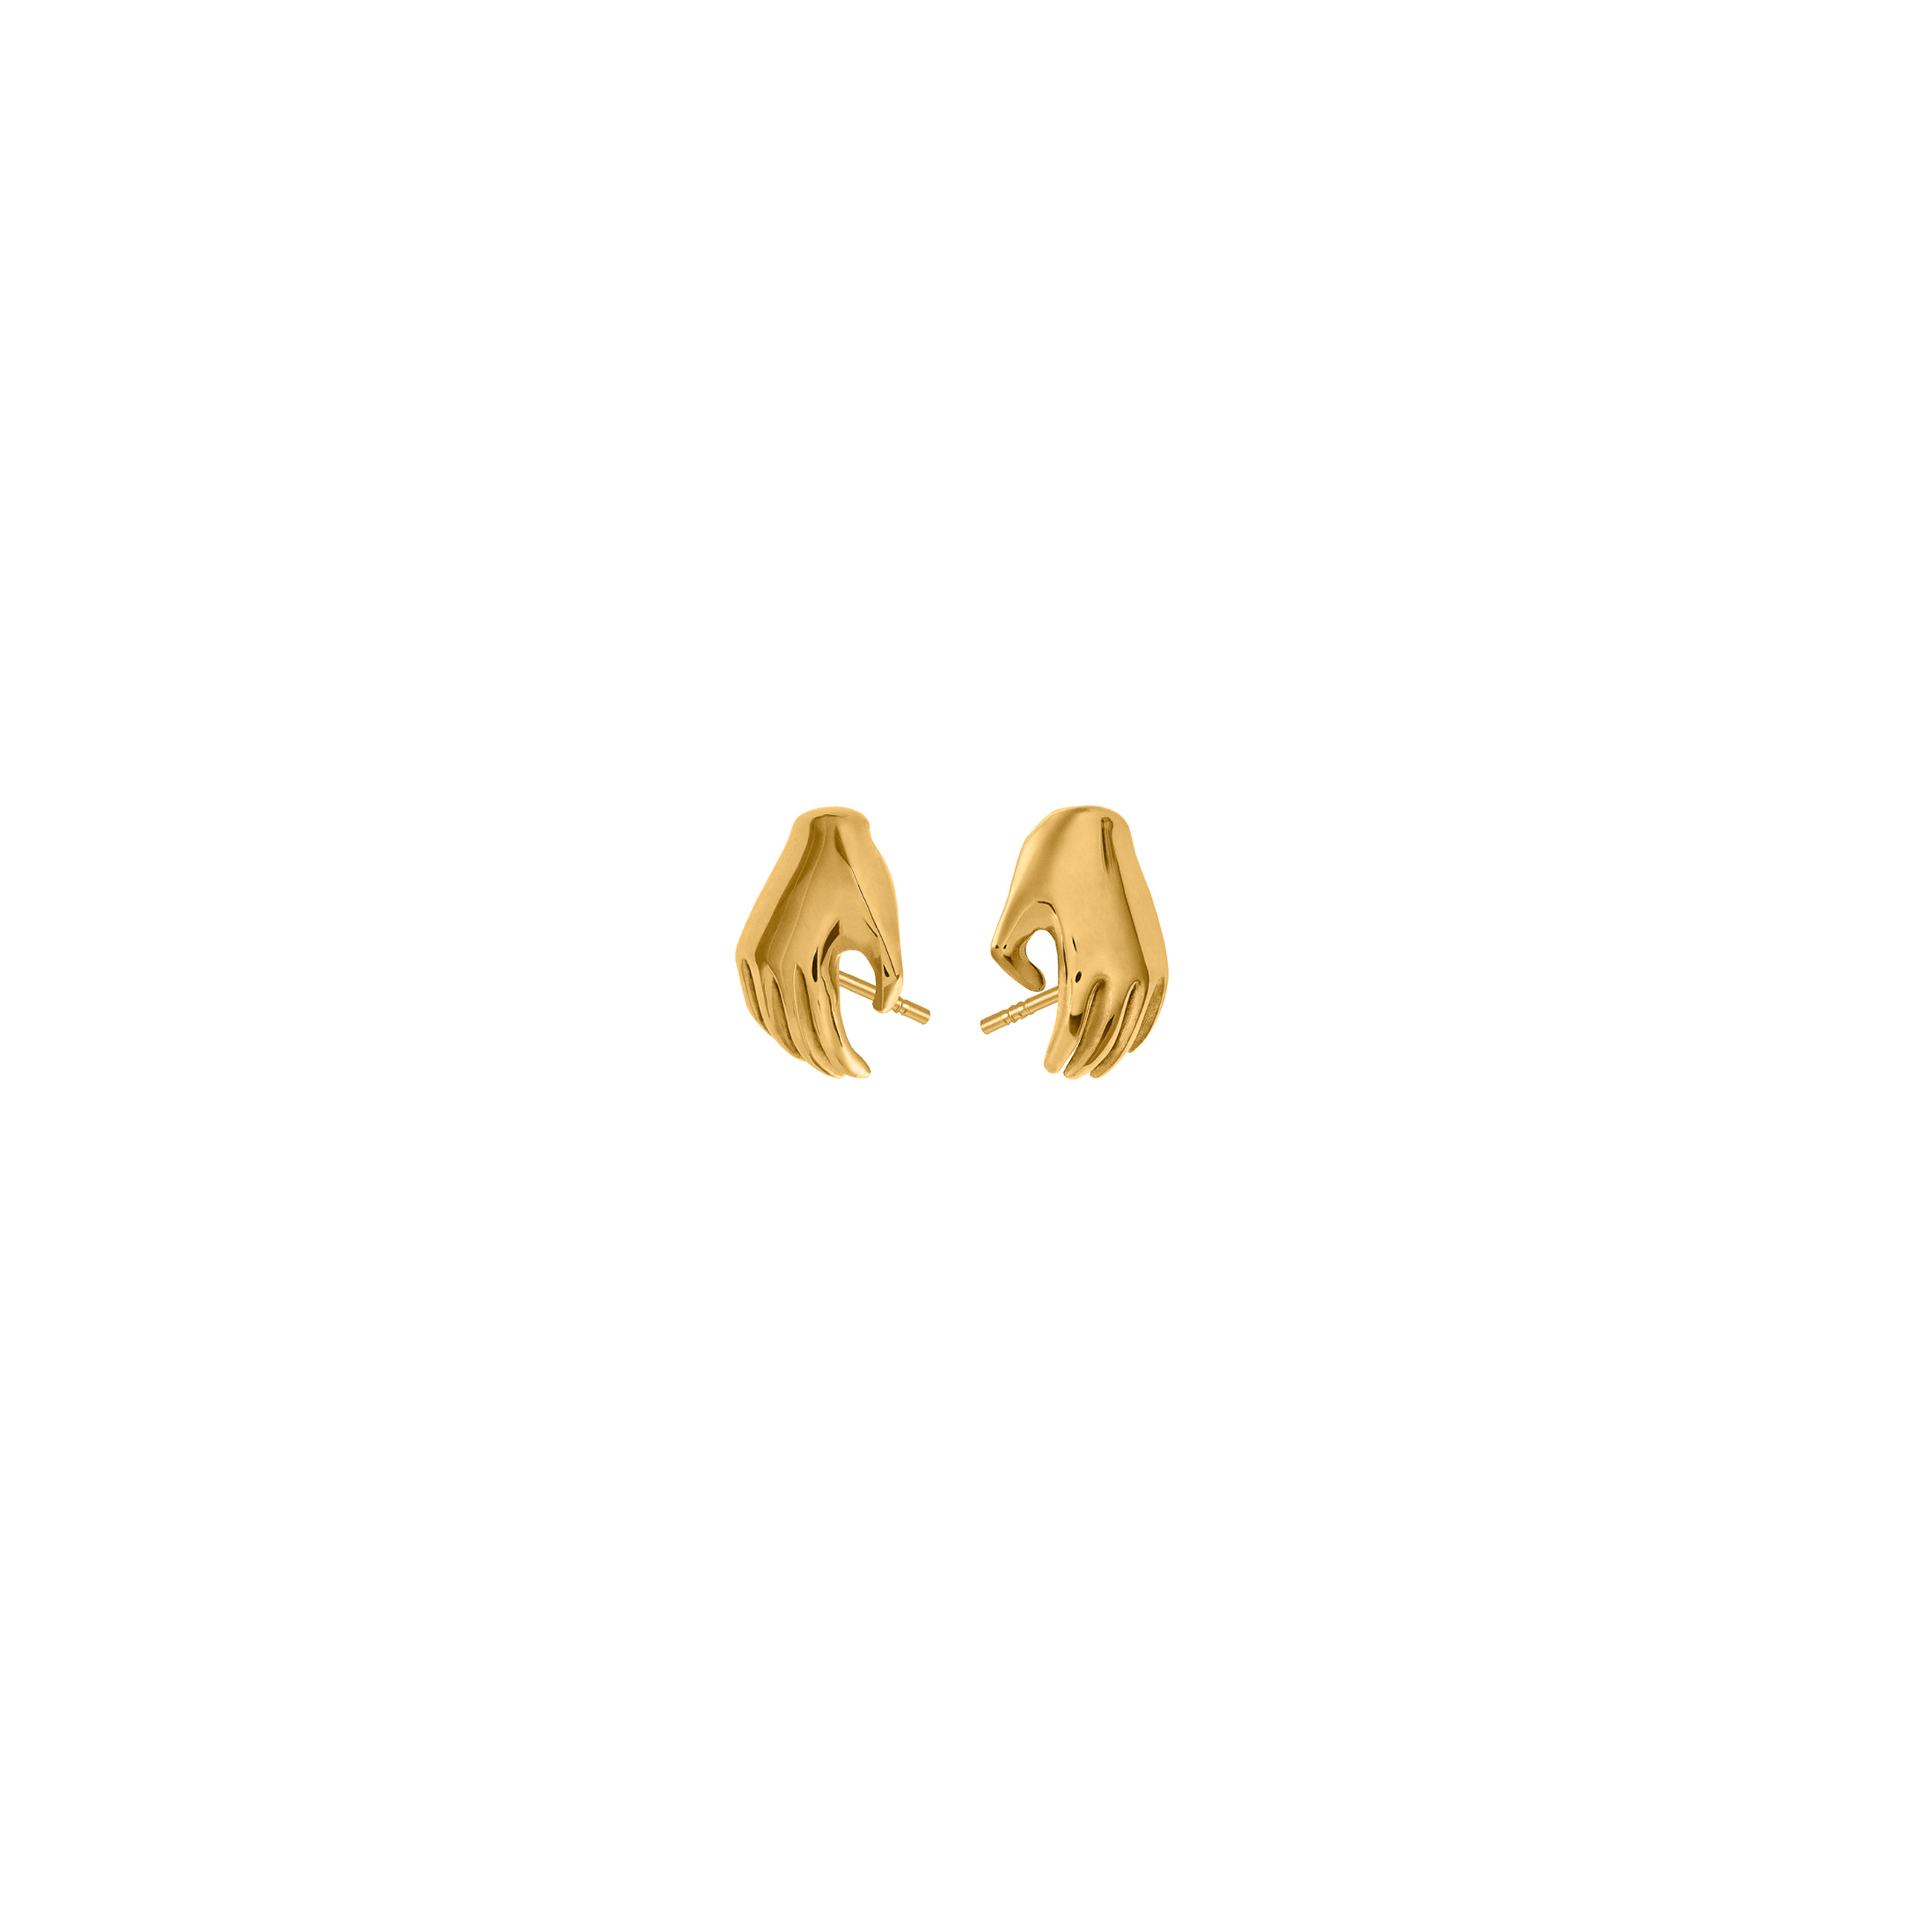 Hand earrings 3D / gold